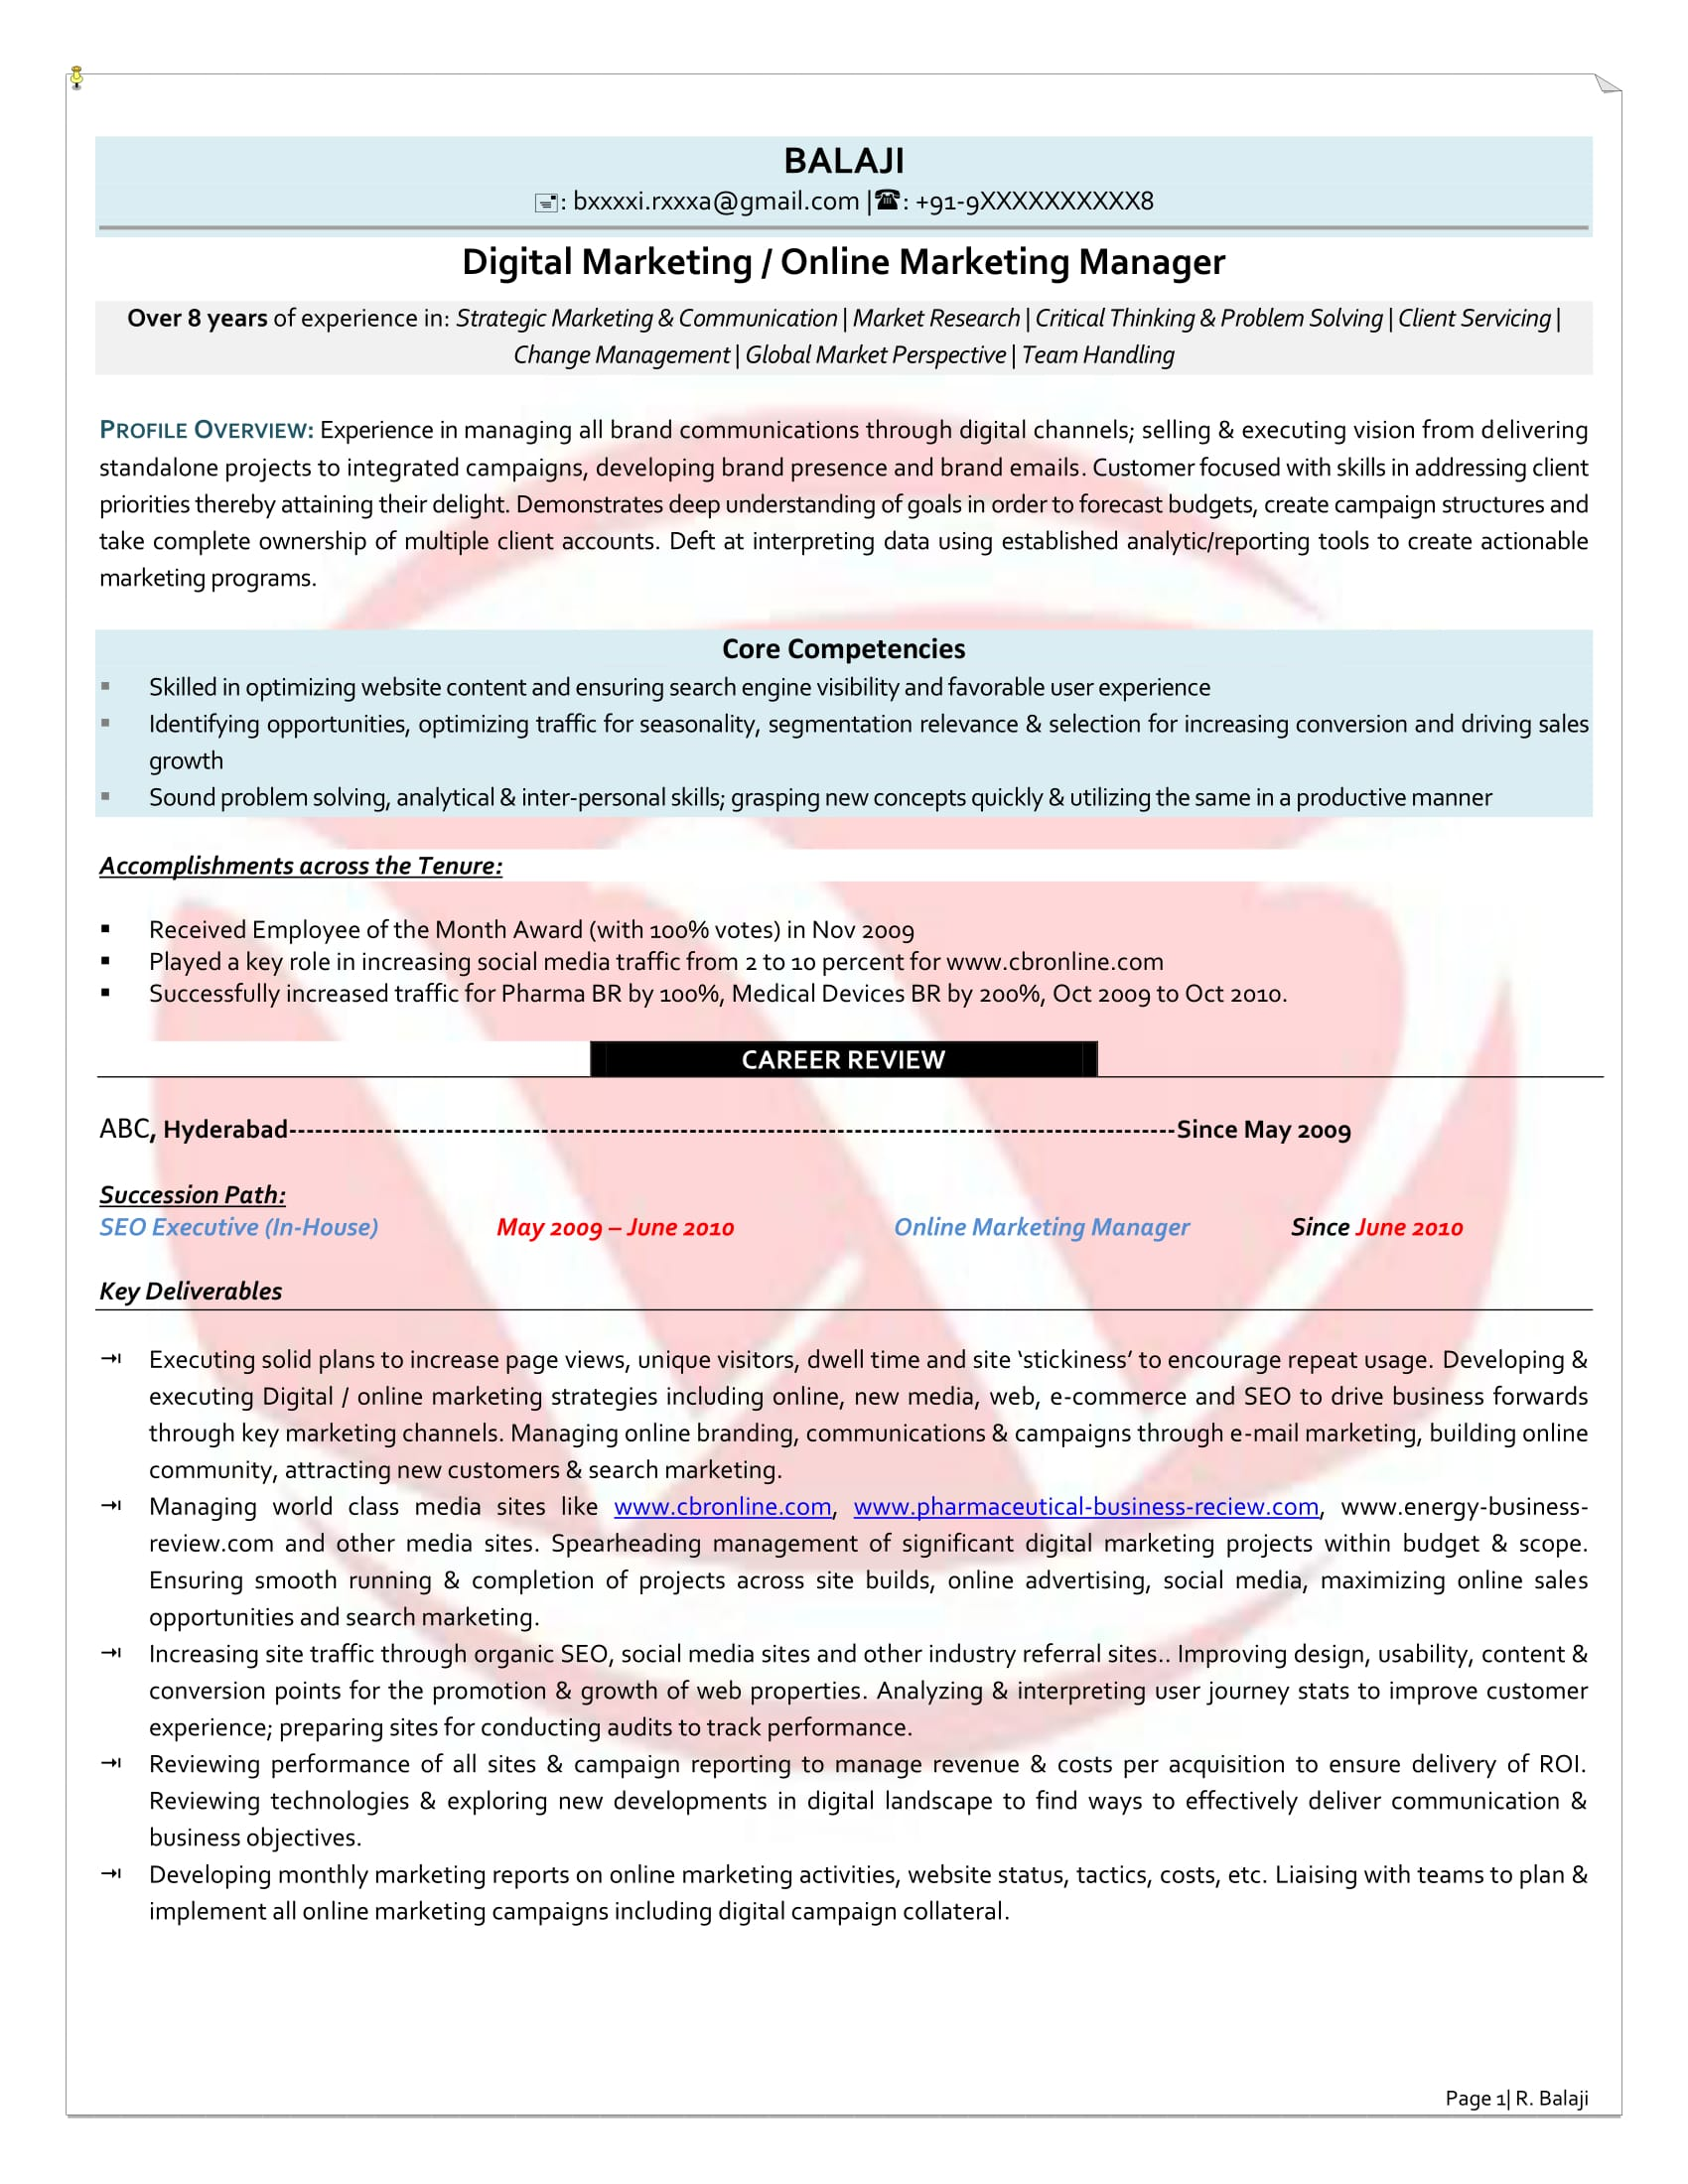 resume Sample Resume For Digital Marketing Manager digital marketing sample resumes download resume format templates resume